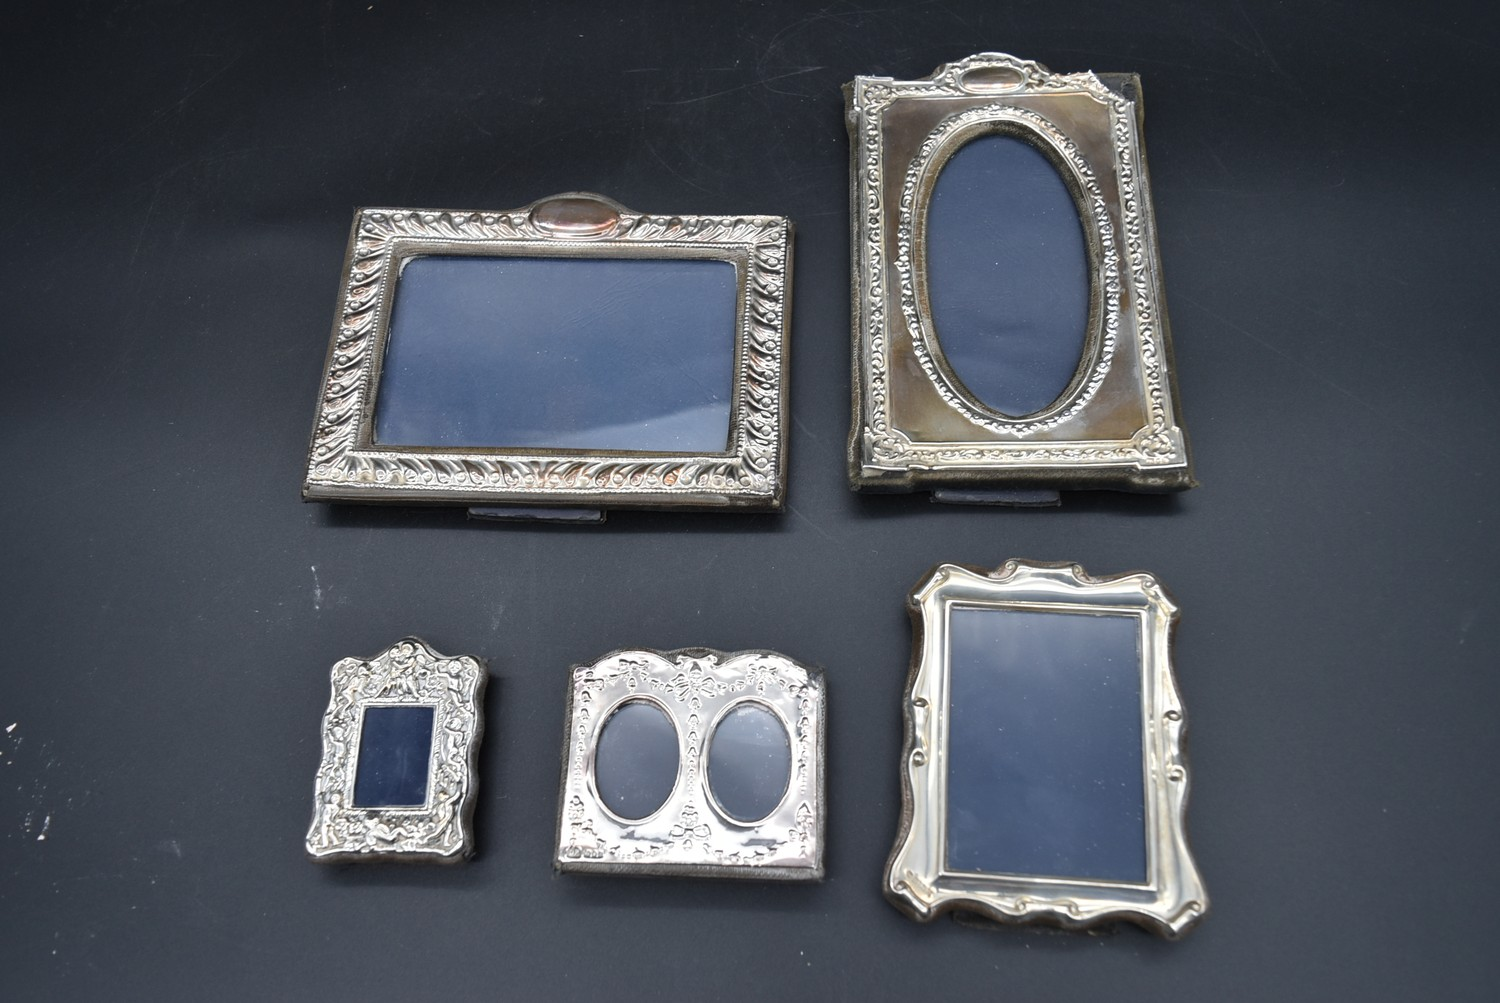 A miscellaneous collection of silver framed easel mirrors, various English hallmarks. H.20cm W.